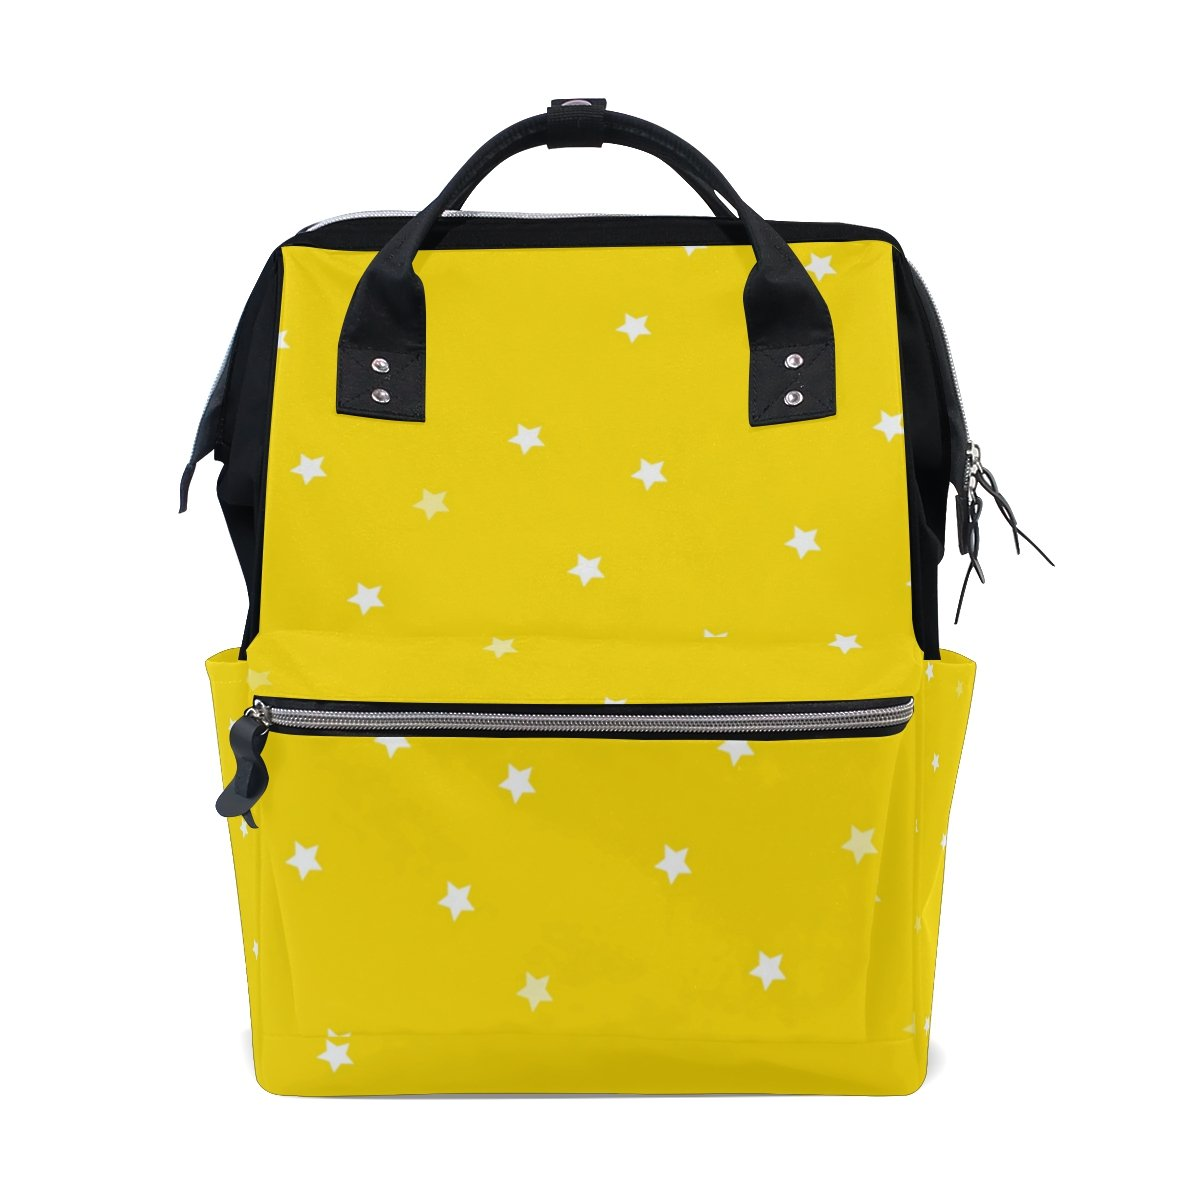 THUNANA Star Pattern Yellow Zipper Travel Large Capacity Baby Diaper Bag School Laptop Canvas Backpack Women